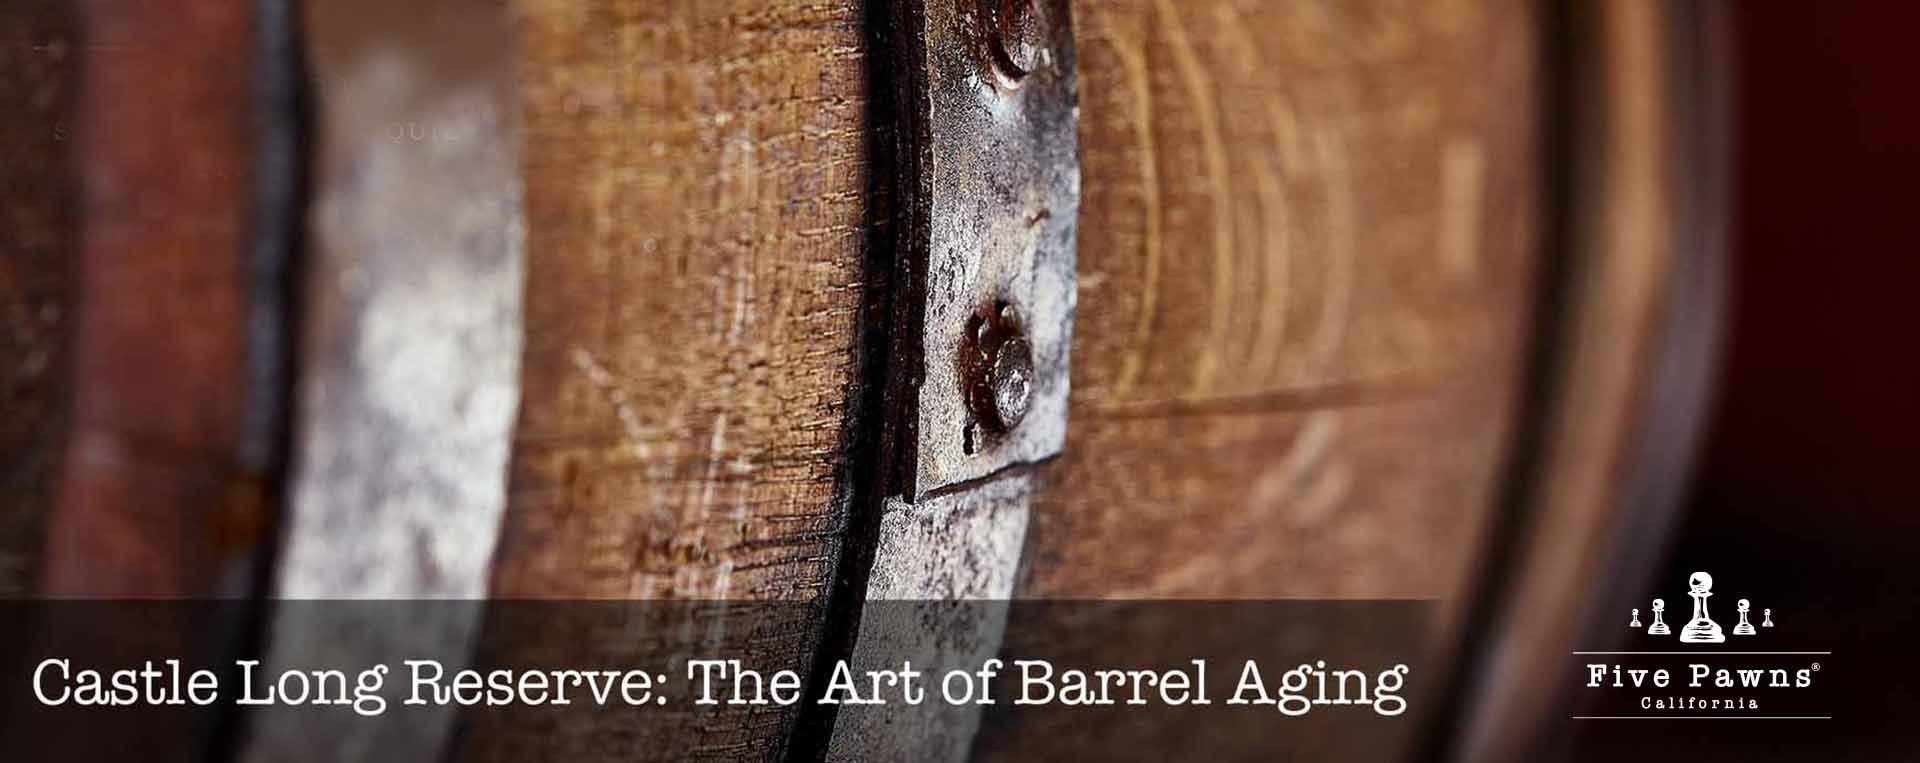 Castle Long Reserve: The Art of Barrel Aging